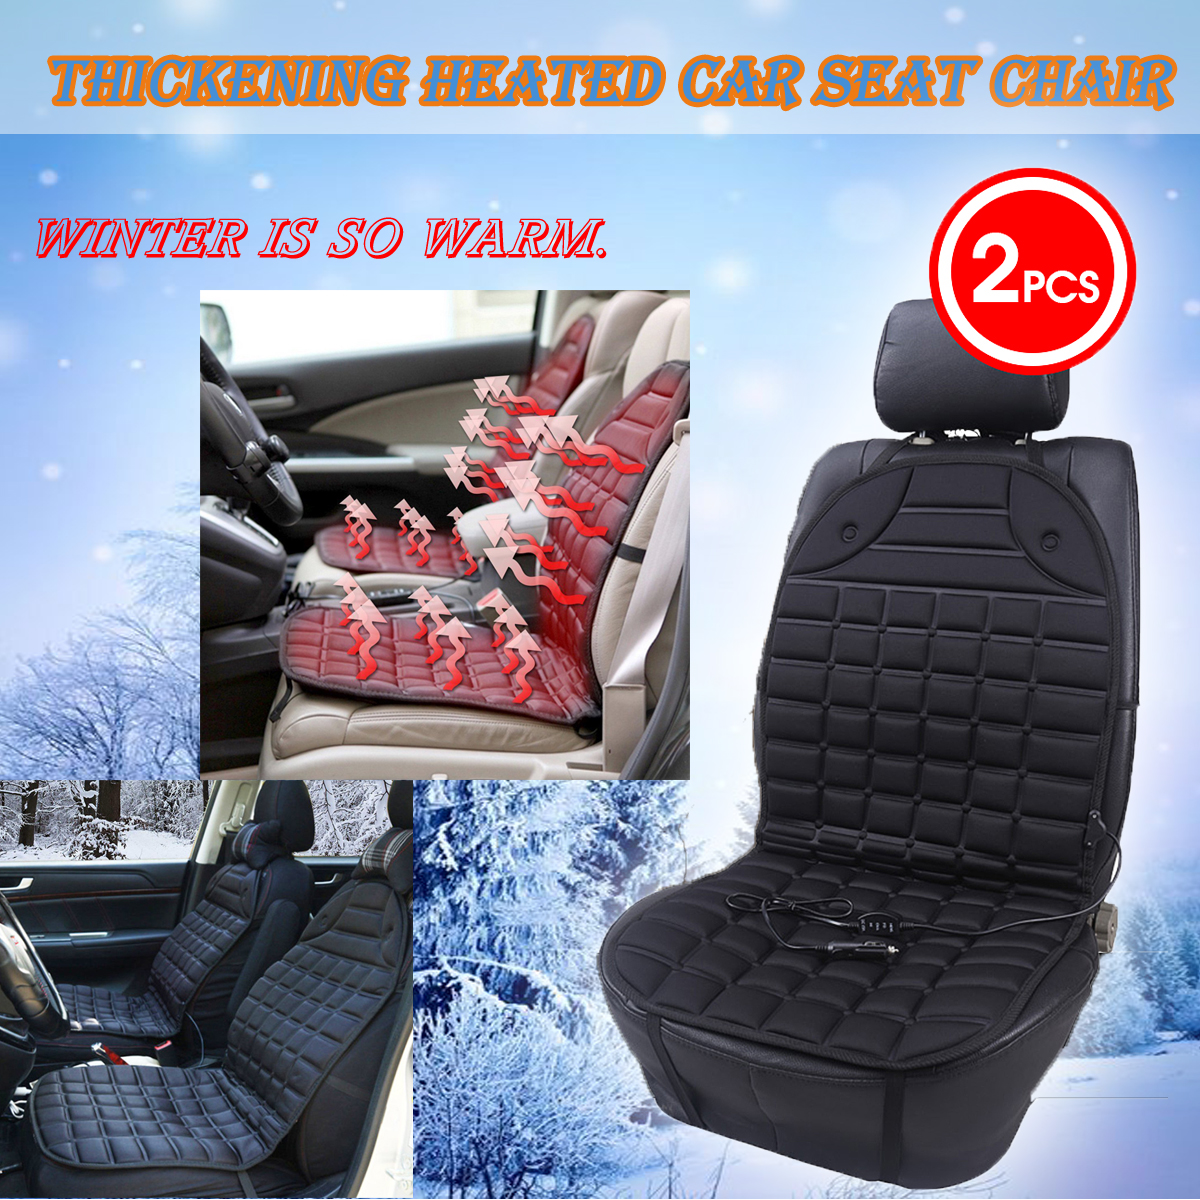 2Pcs Auto 12V Universal Electric Car Heated Seat Cushion Cover Heating Warmer Massage Seat Pad For Winter Car Conjoined Supplies